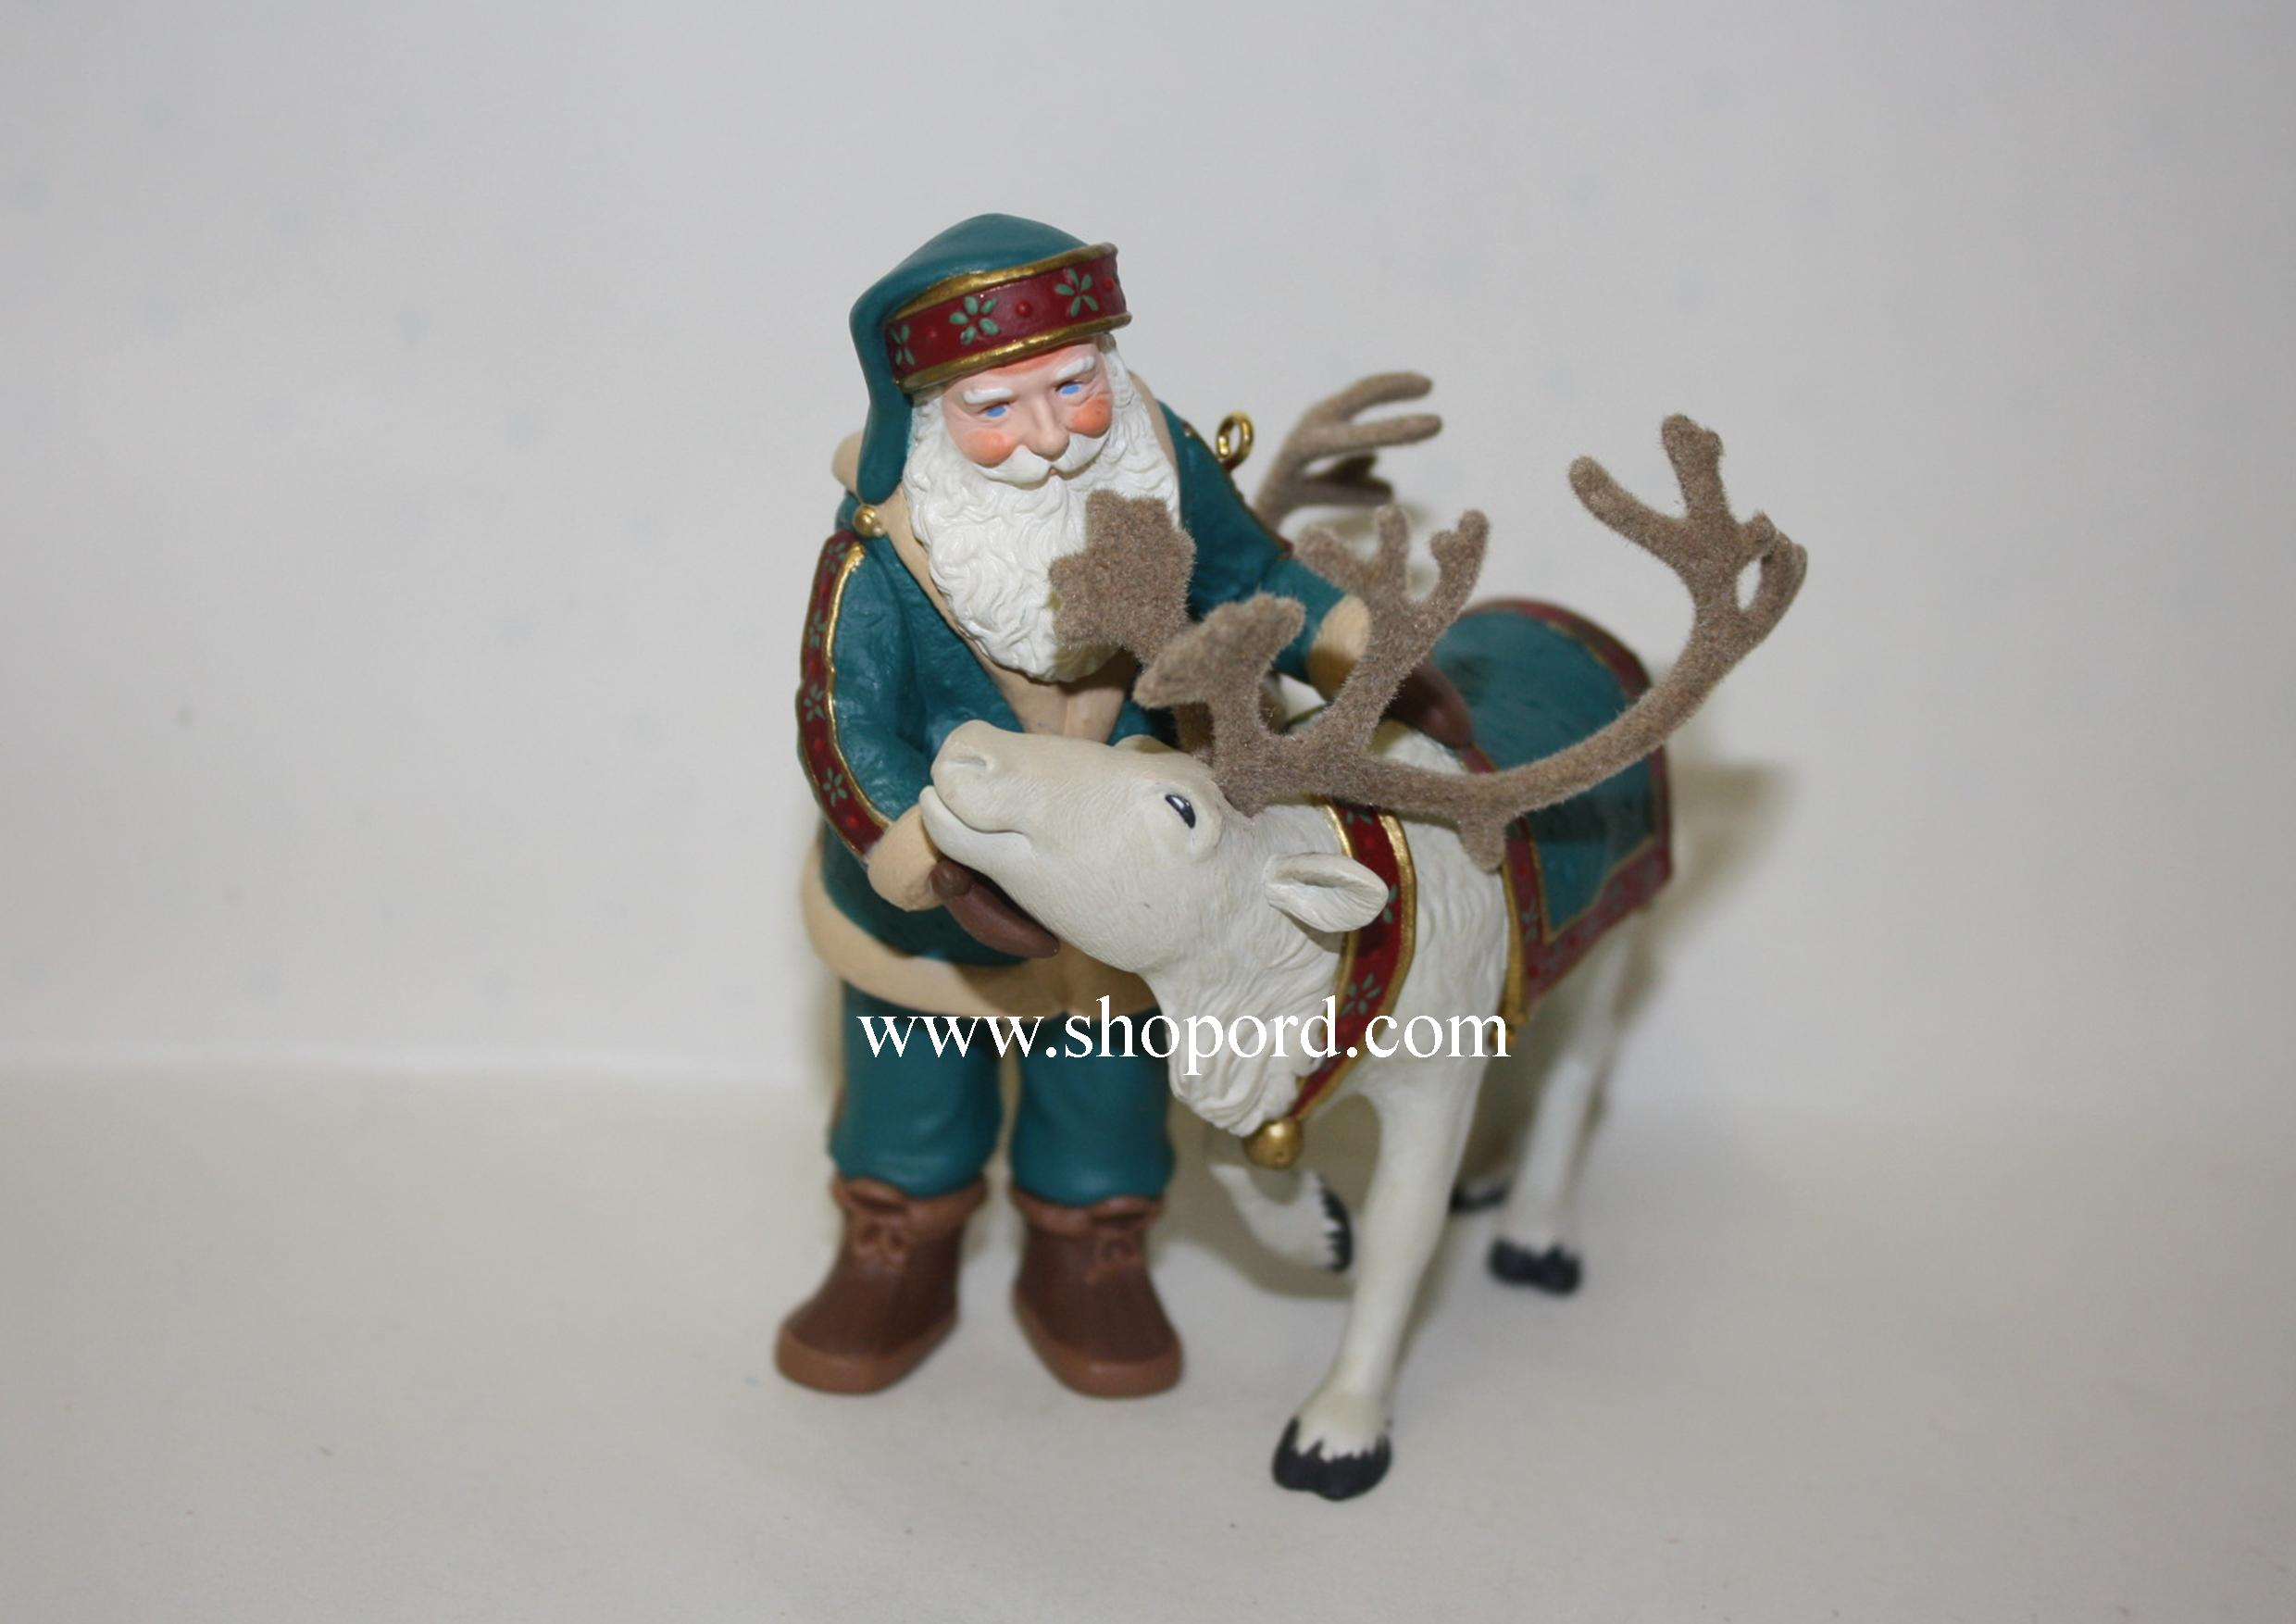 Hallmark 1998 Santas Deer Friend Ornament QX6583